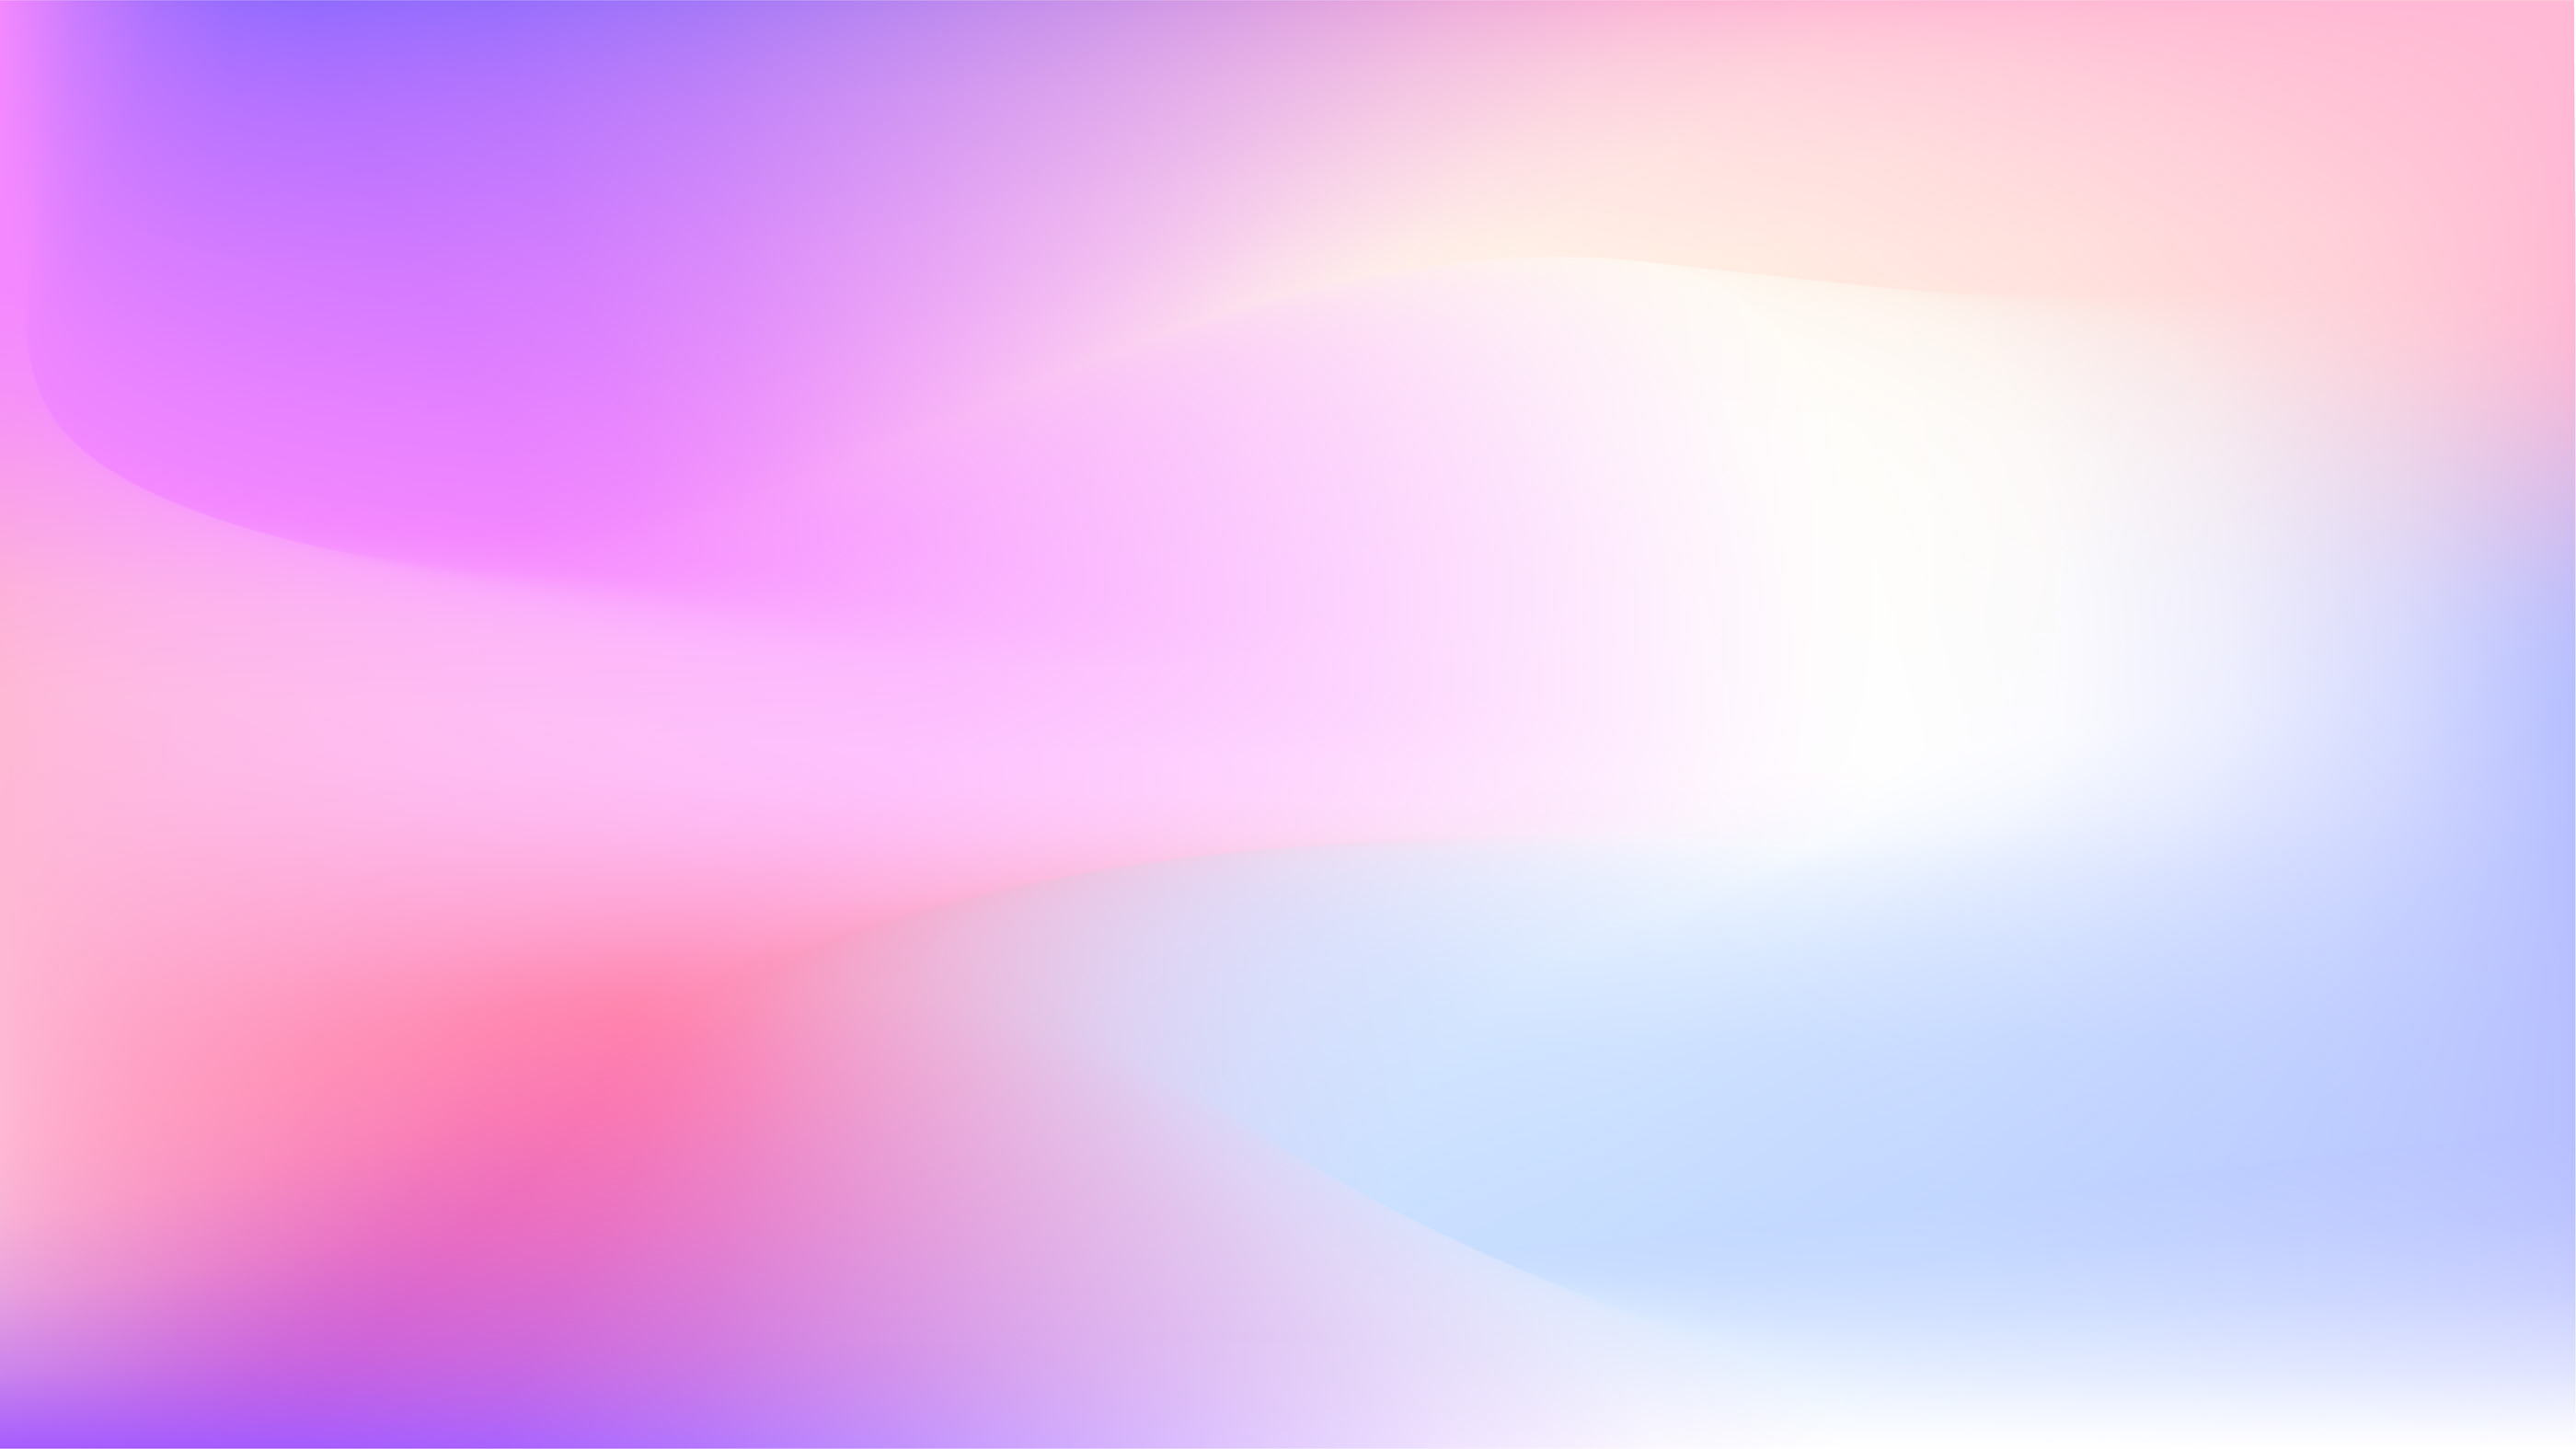 Free Holographic, Multicolor, Unicorn Vector Gradients - 8